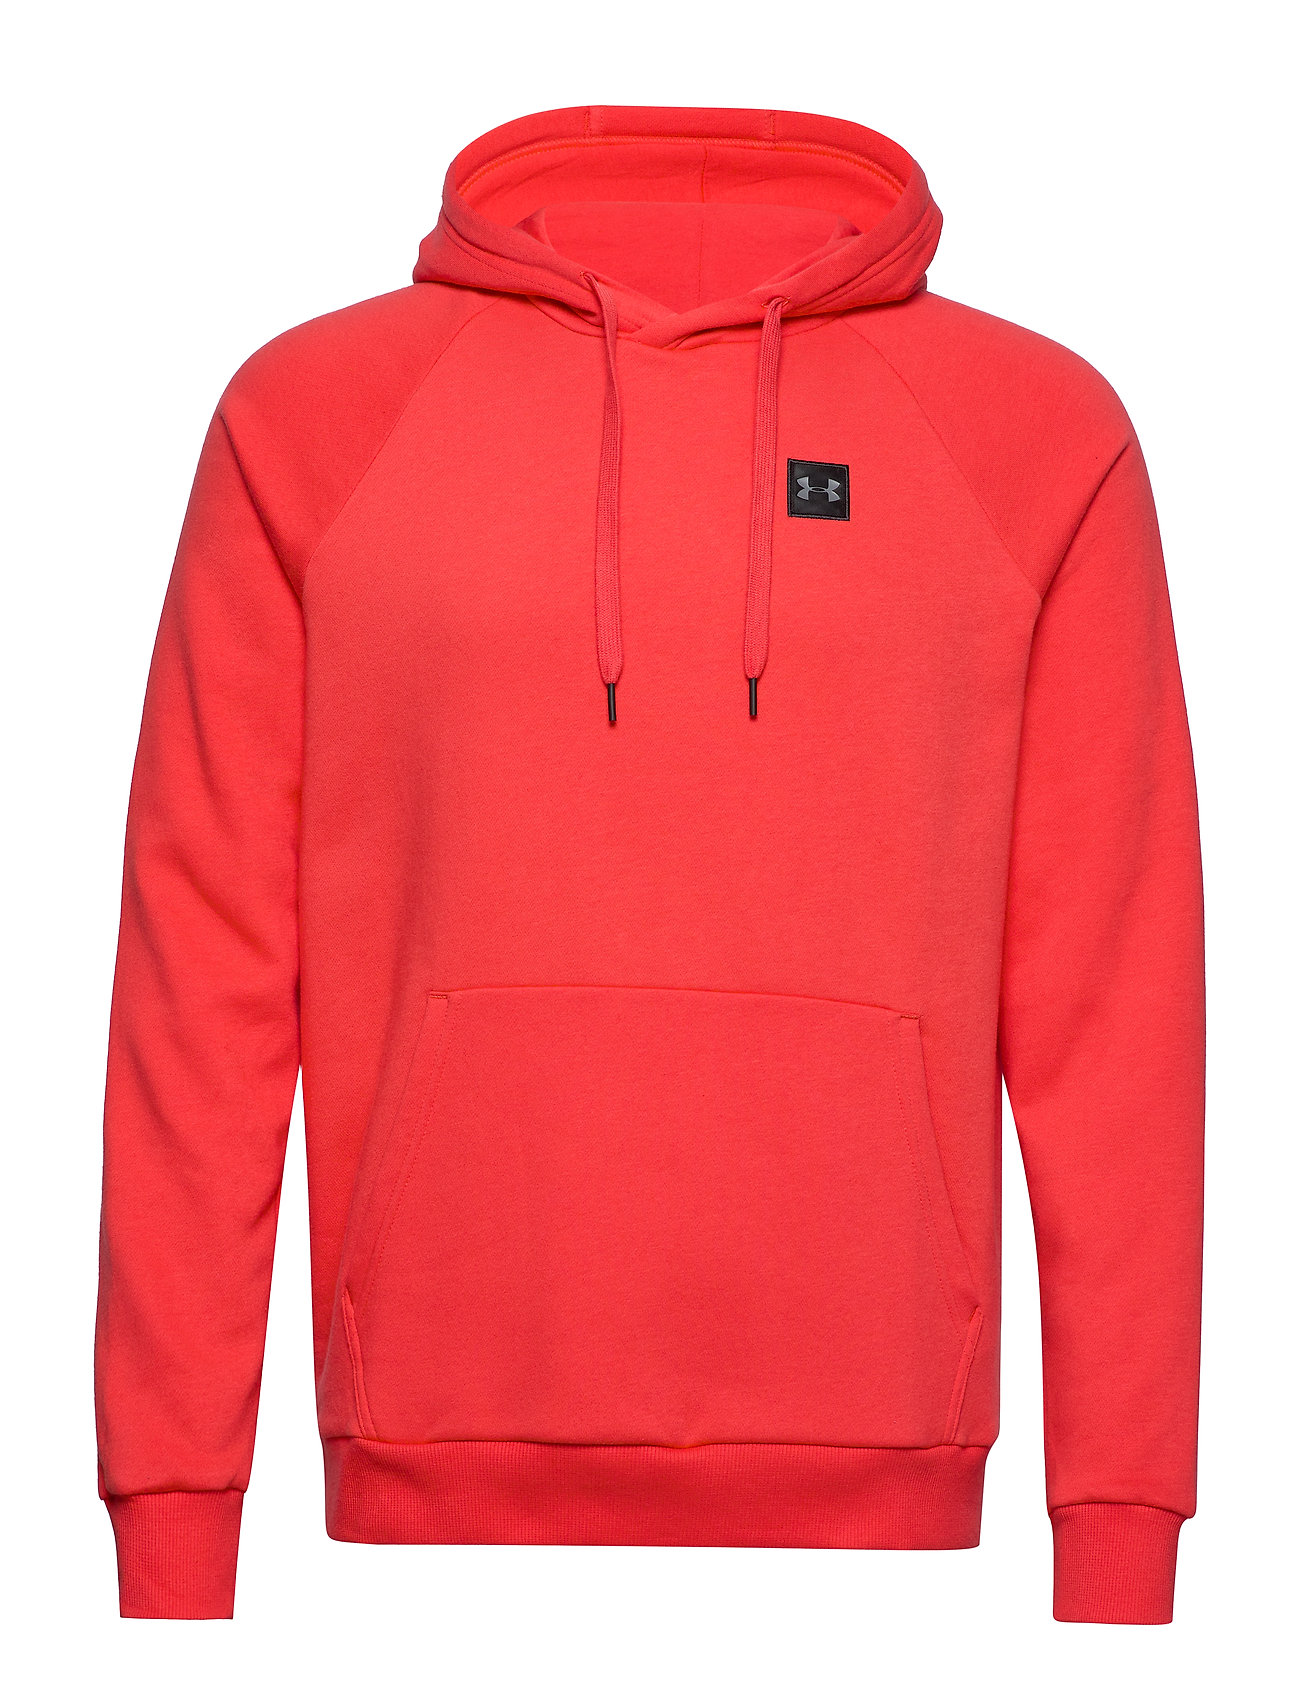 Under Armour RIVAL FLEECE PO HOODIE - MARTIAN RED